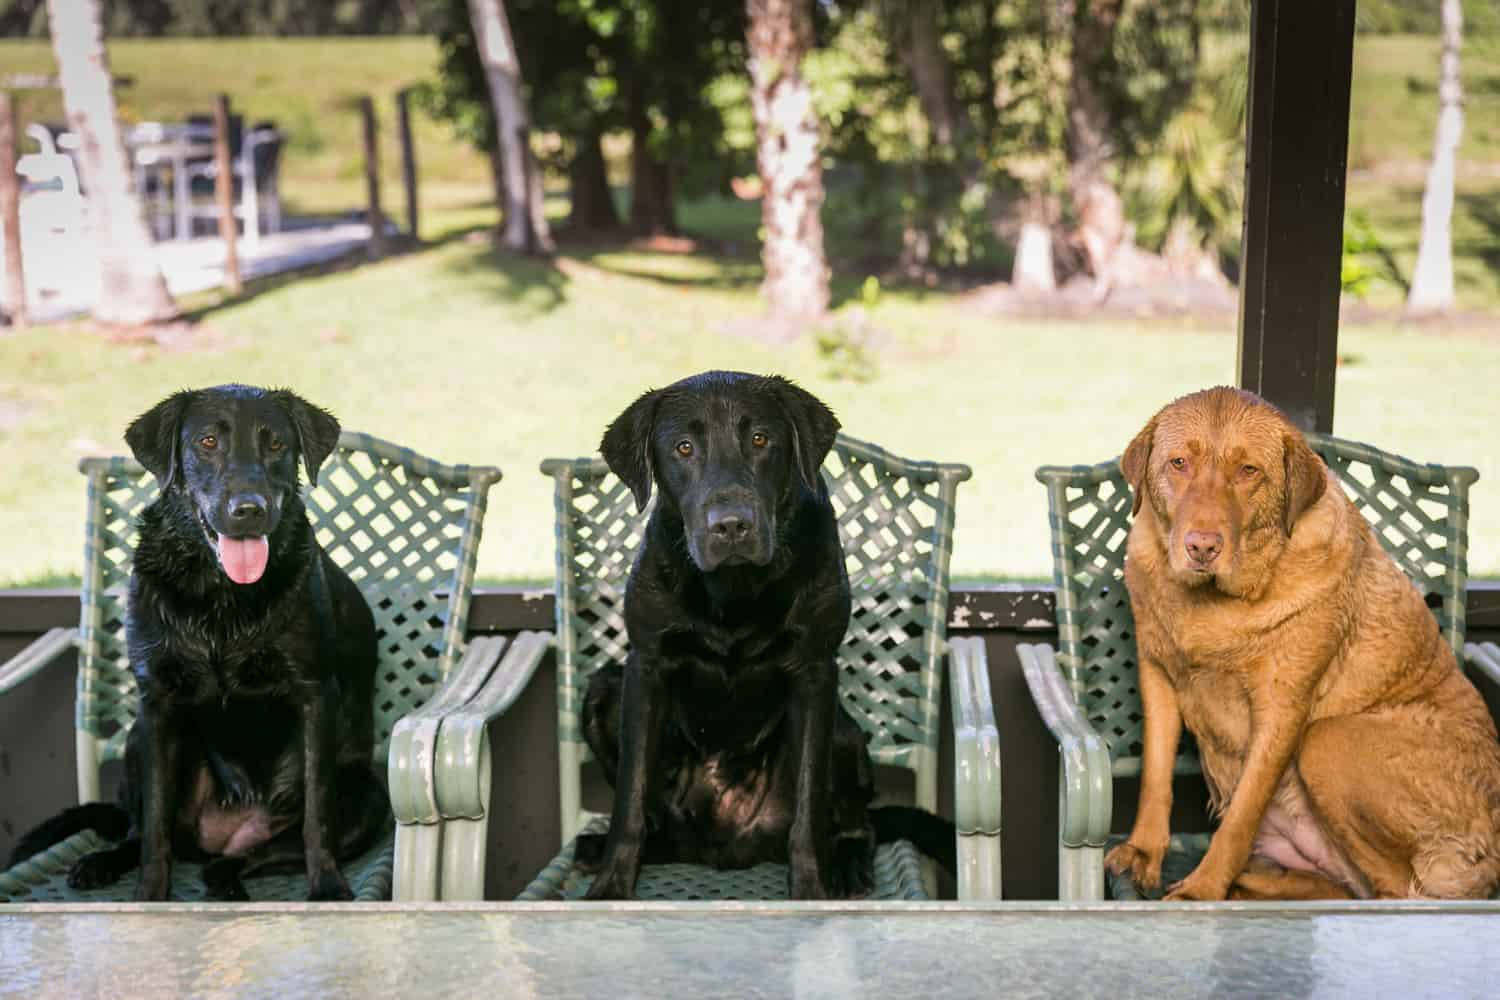 Three labrador retriever dogs sitting in chairs